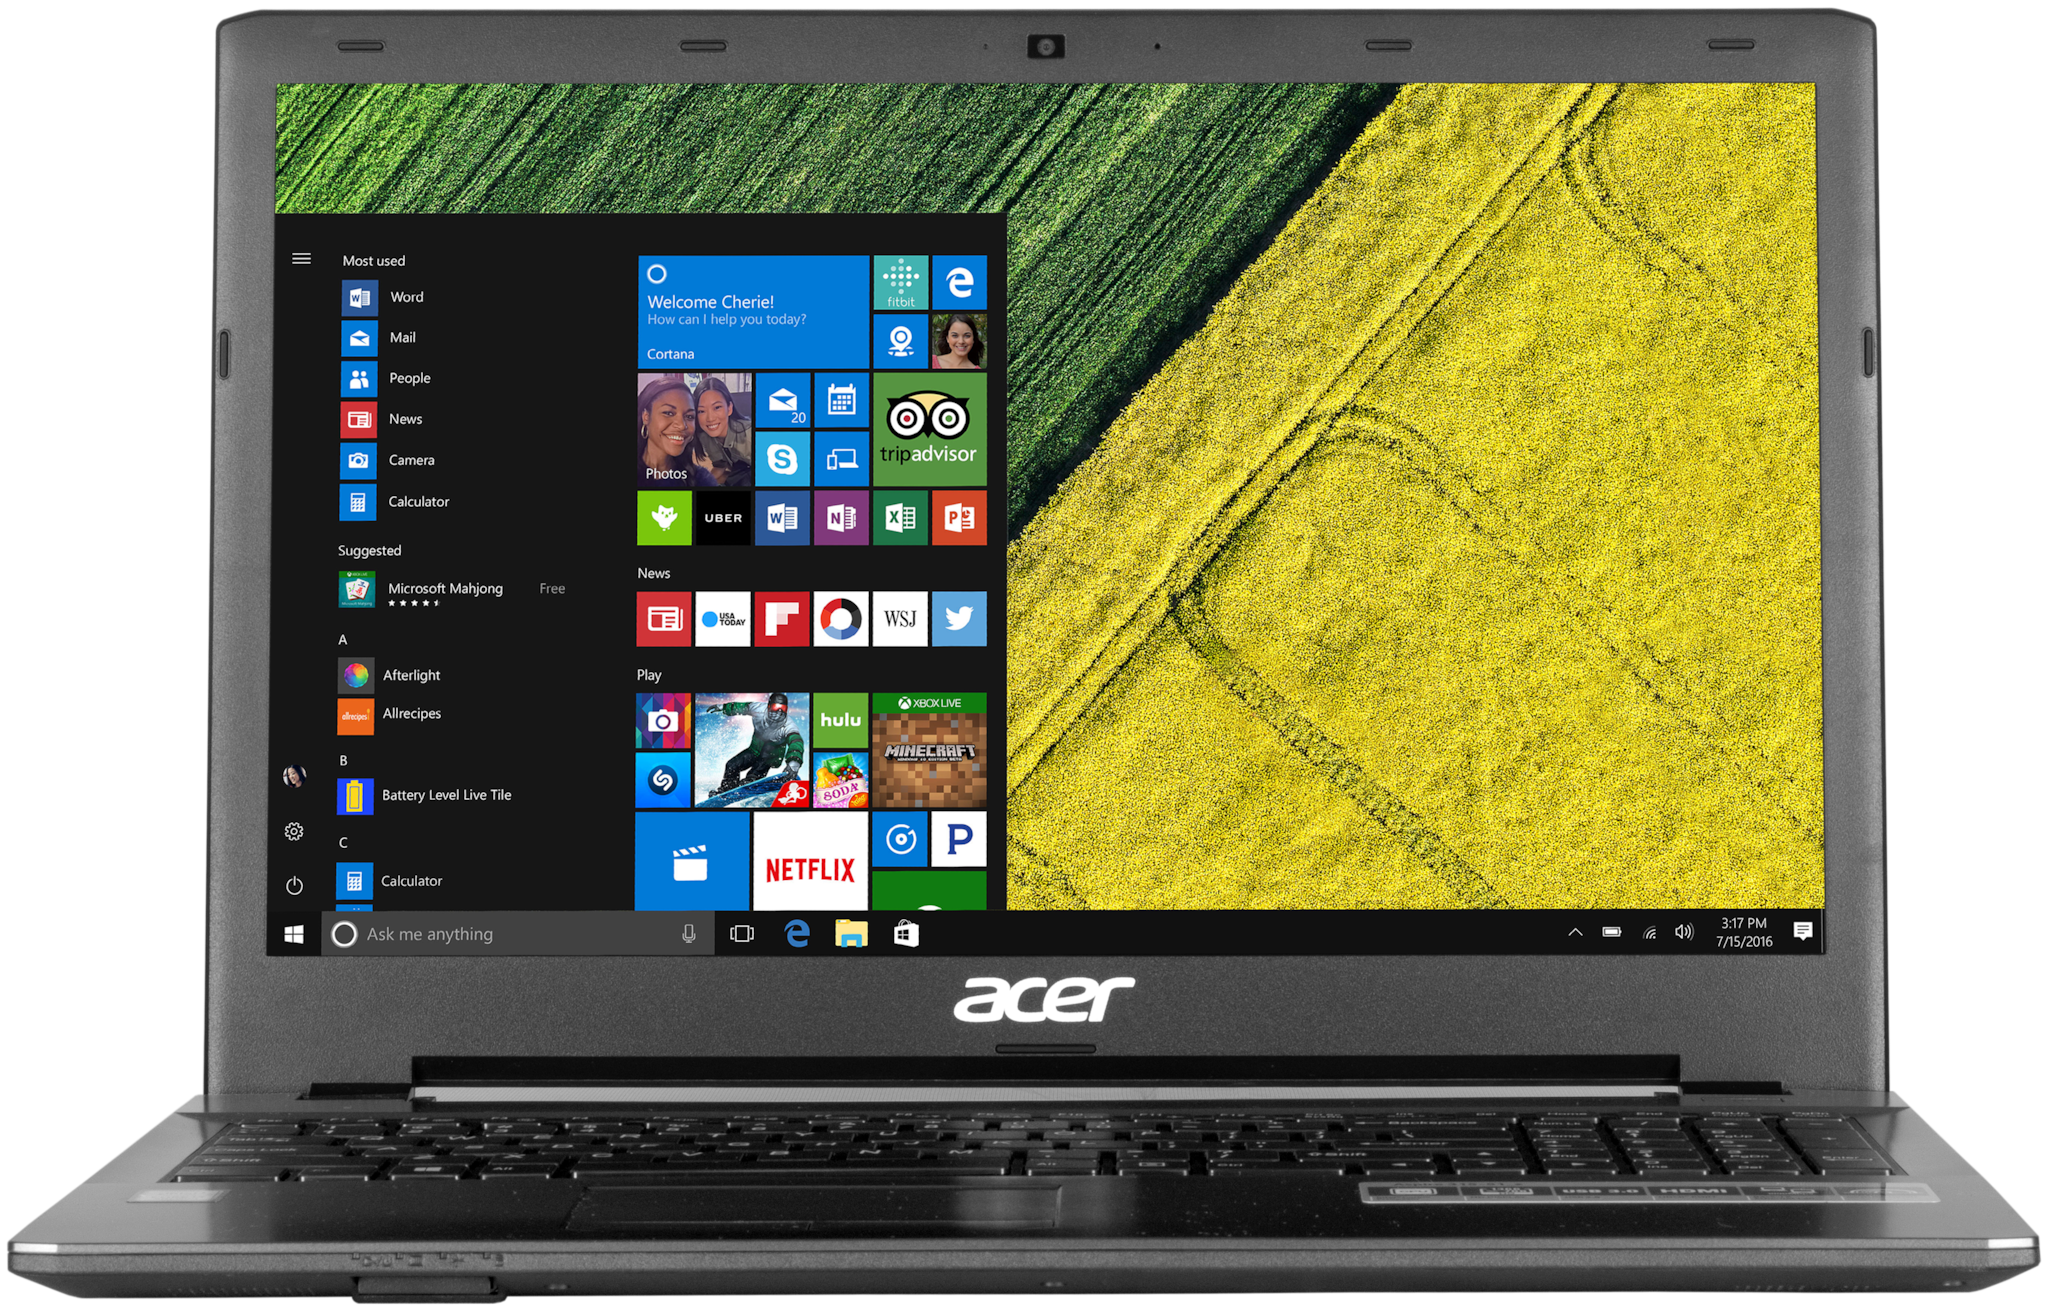 Acer Aspire 315-51_Z (Core i3 - 7th Gen / 4 GB / 1 TB / 39.62 cm (15.6 Inch) / Windows 10) Aspire 3 A3Z (UN.CTESI.012) (Black, 2.1 kg)